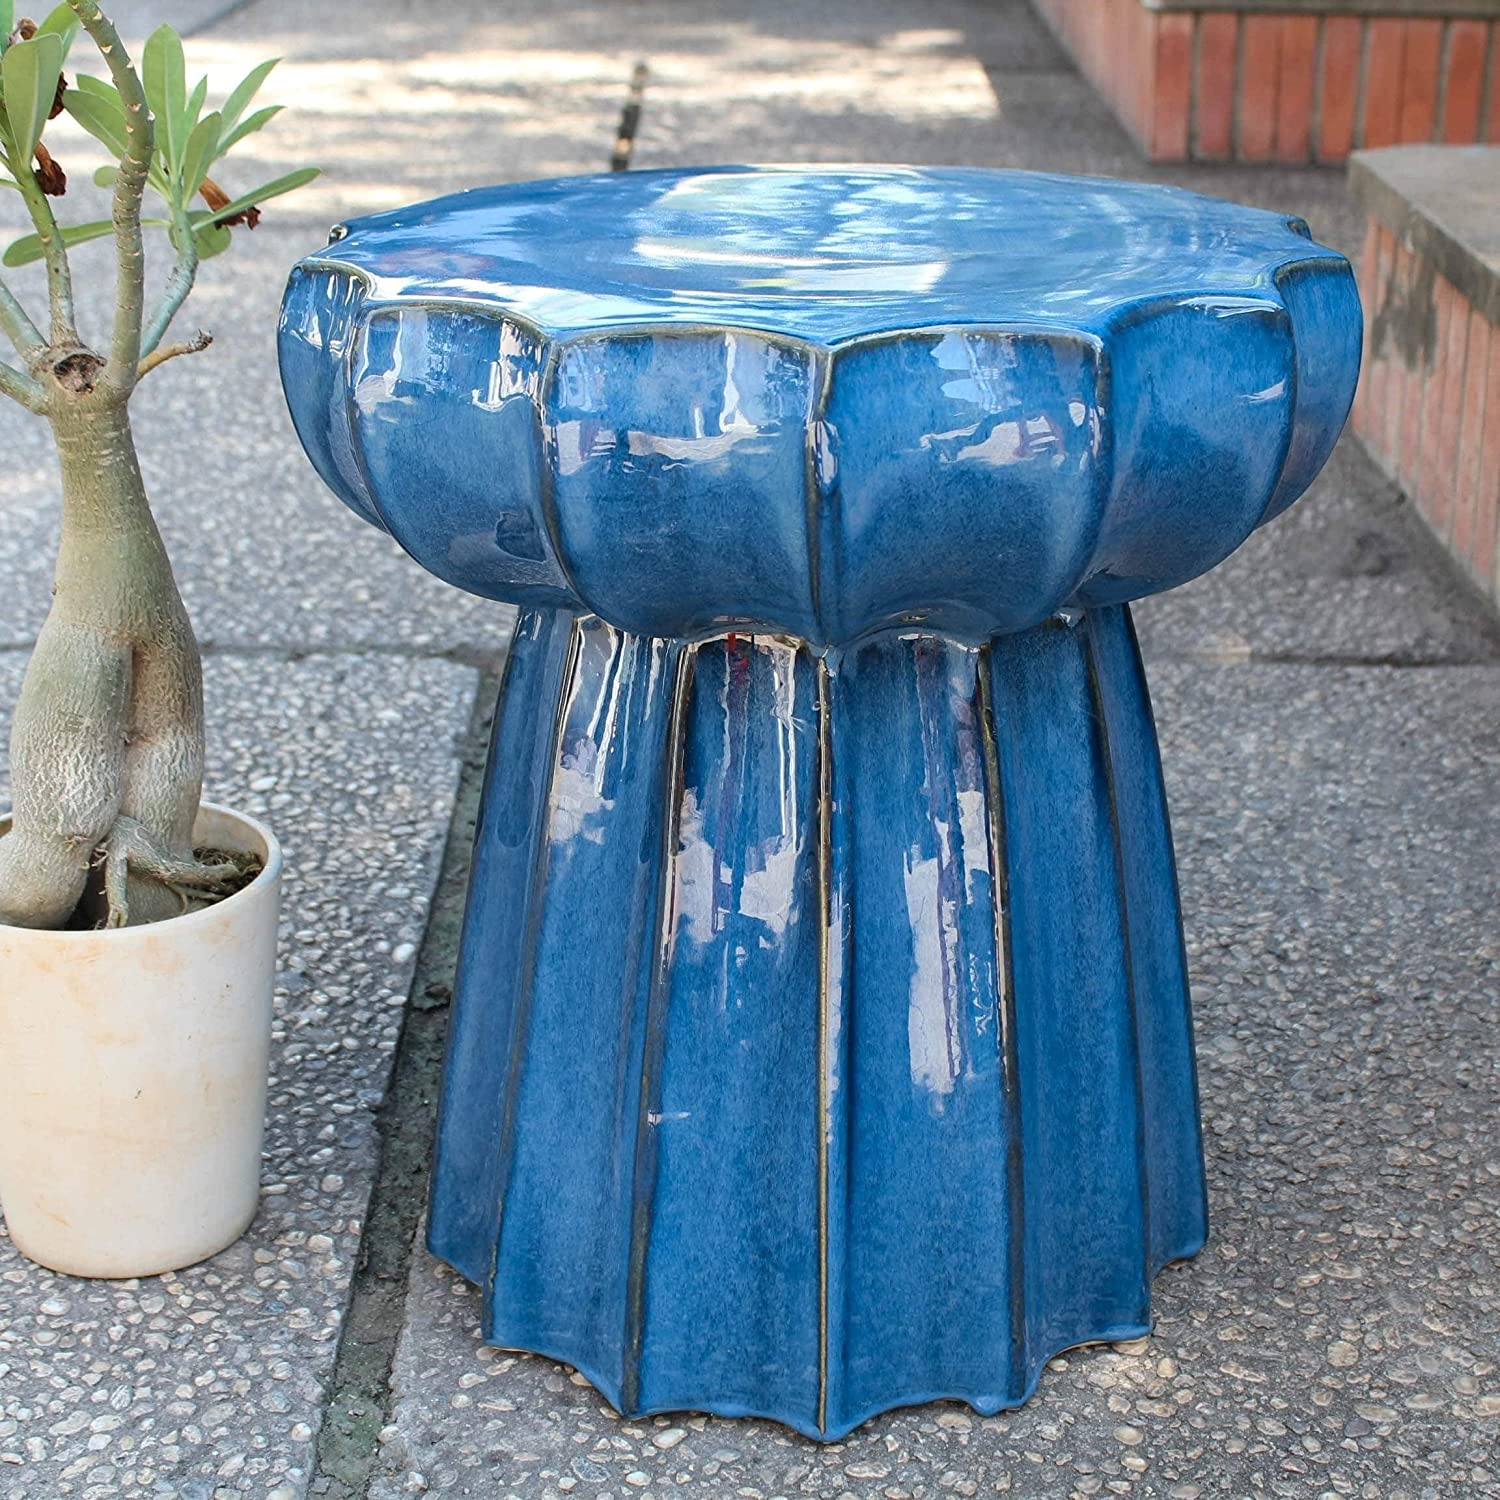 International Caravan Max 81% OFF Furniture Piece Quality inspection Scalloped Round Blue Navy